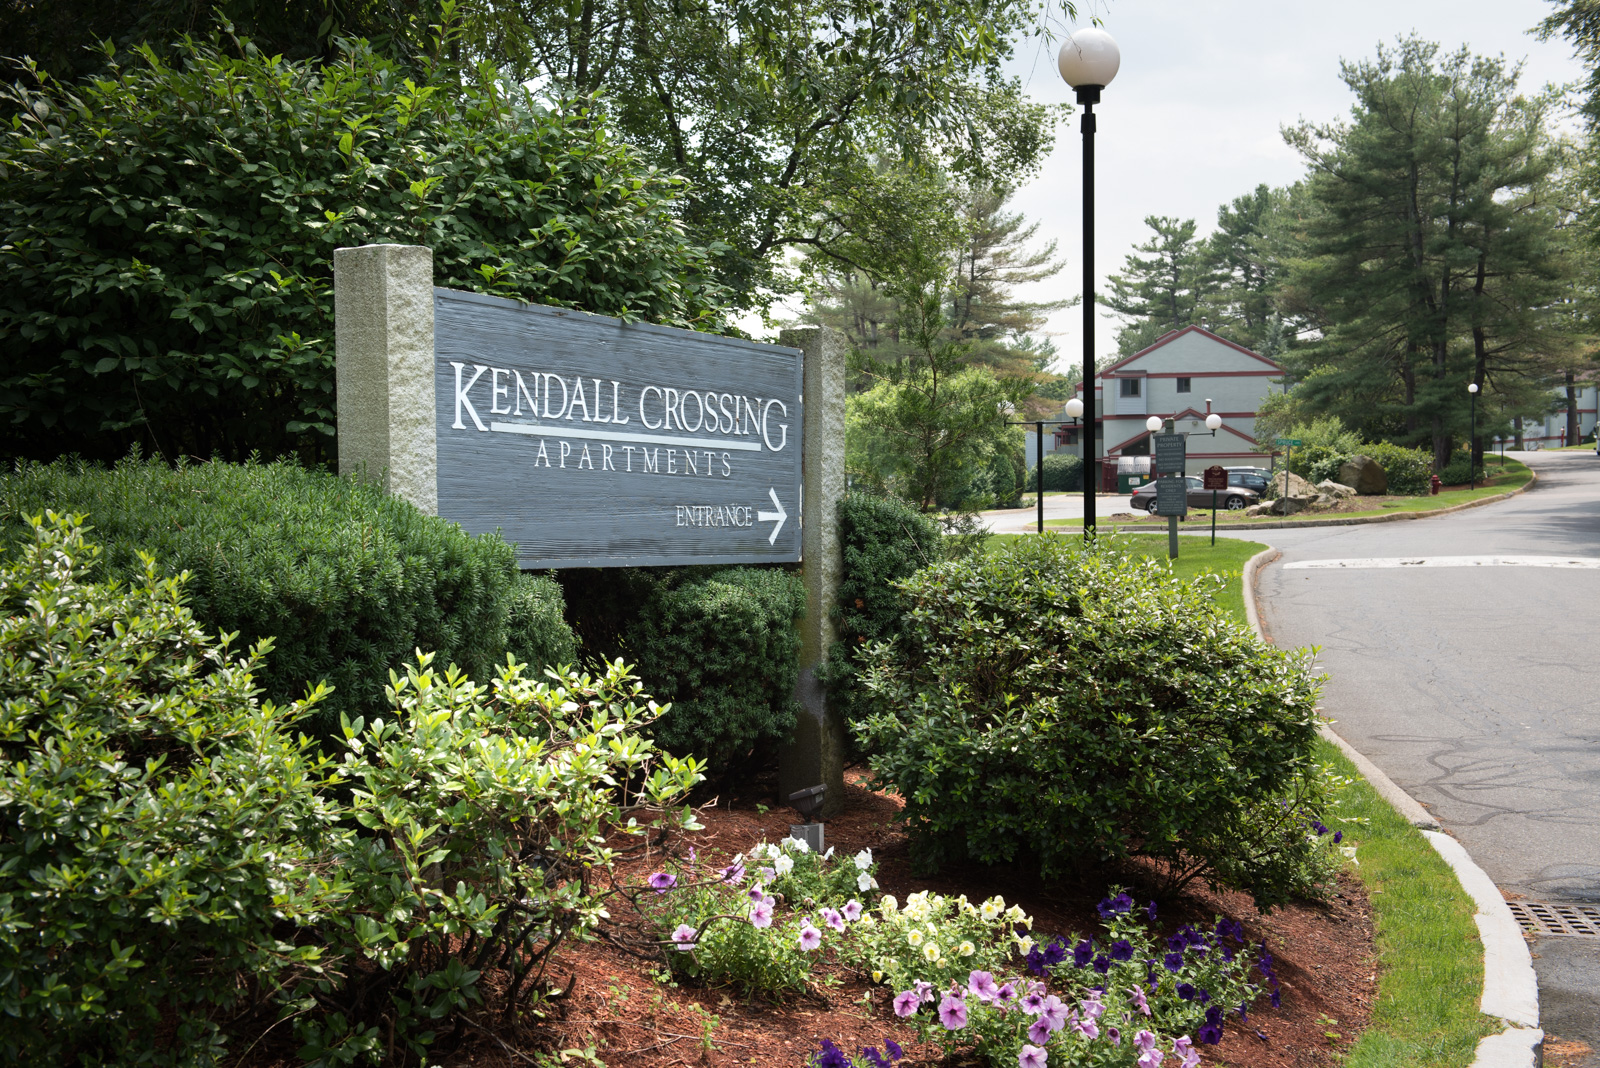 Kendall crossing franchi management company